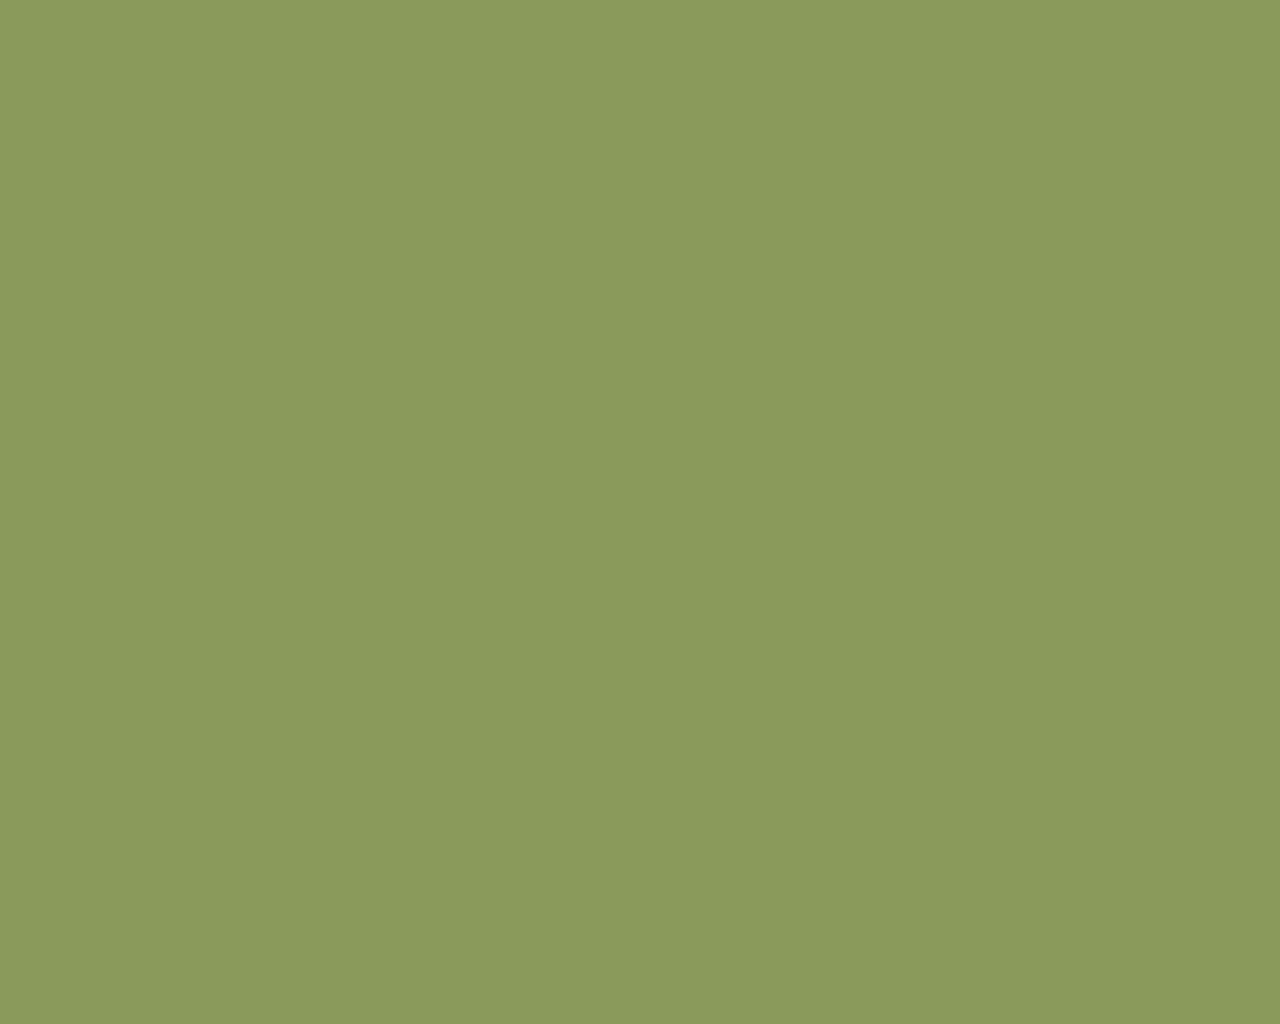 1280x1024 Moss Green Solid Color Background